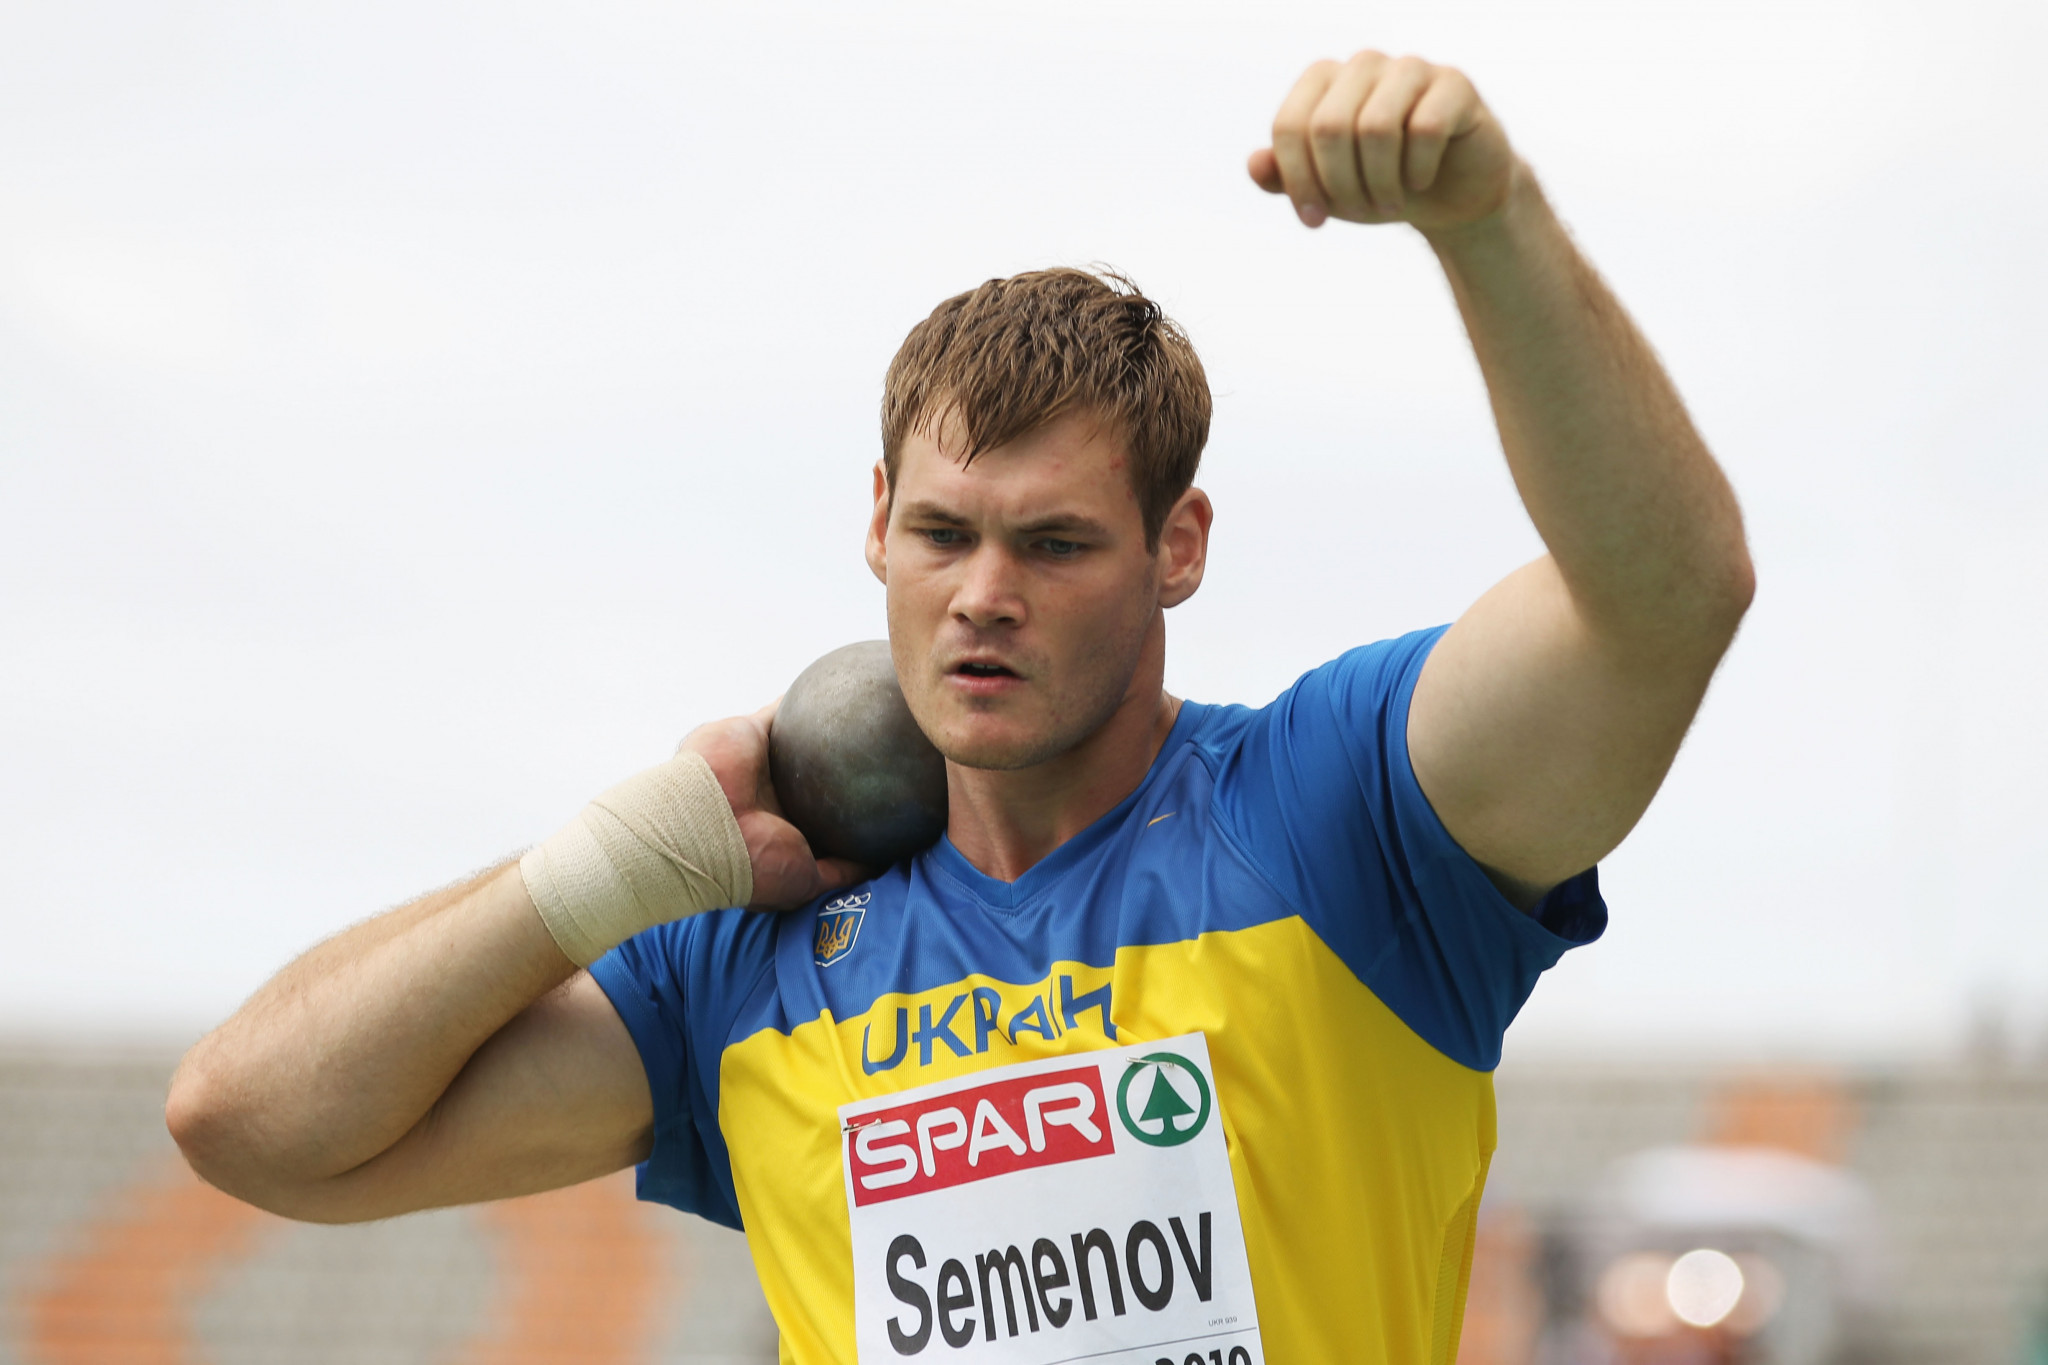 A re-tested 2011 sample from Ukraine shot putter Andriy Semenov has come up positive, the AIU said ©Getty Images